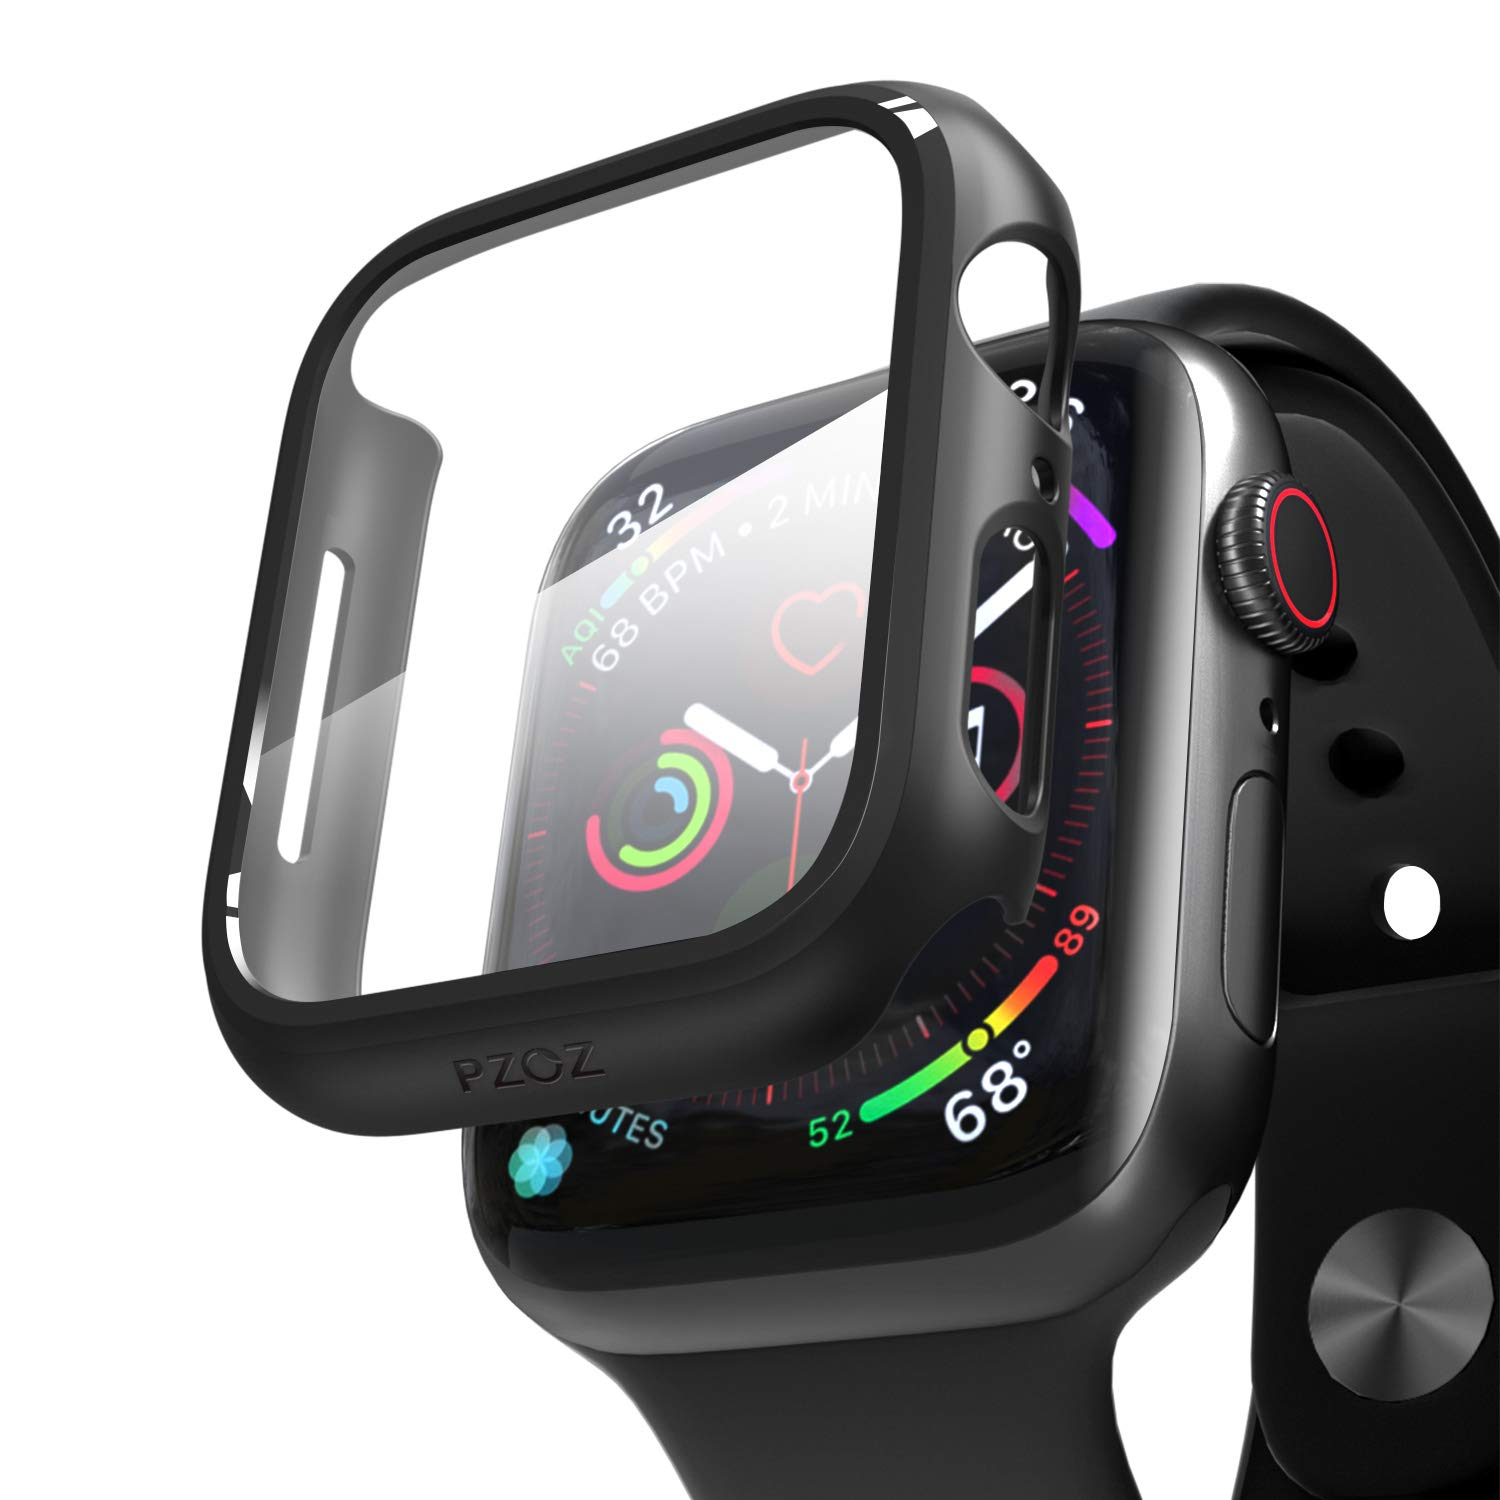 pzoz Compatible Apple Watch Series 5 / Series 4 Case with Screen Protector 40mm Accessories Slim Guard Thin Bumper Full Coverage Matte Hard Cover Defense Edge for Women Men New Gen GPS iWatch (Black) by pzoz